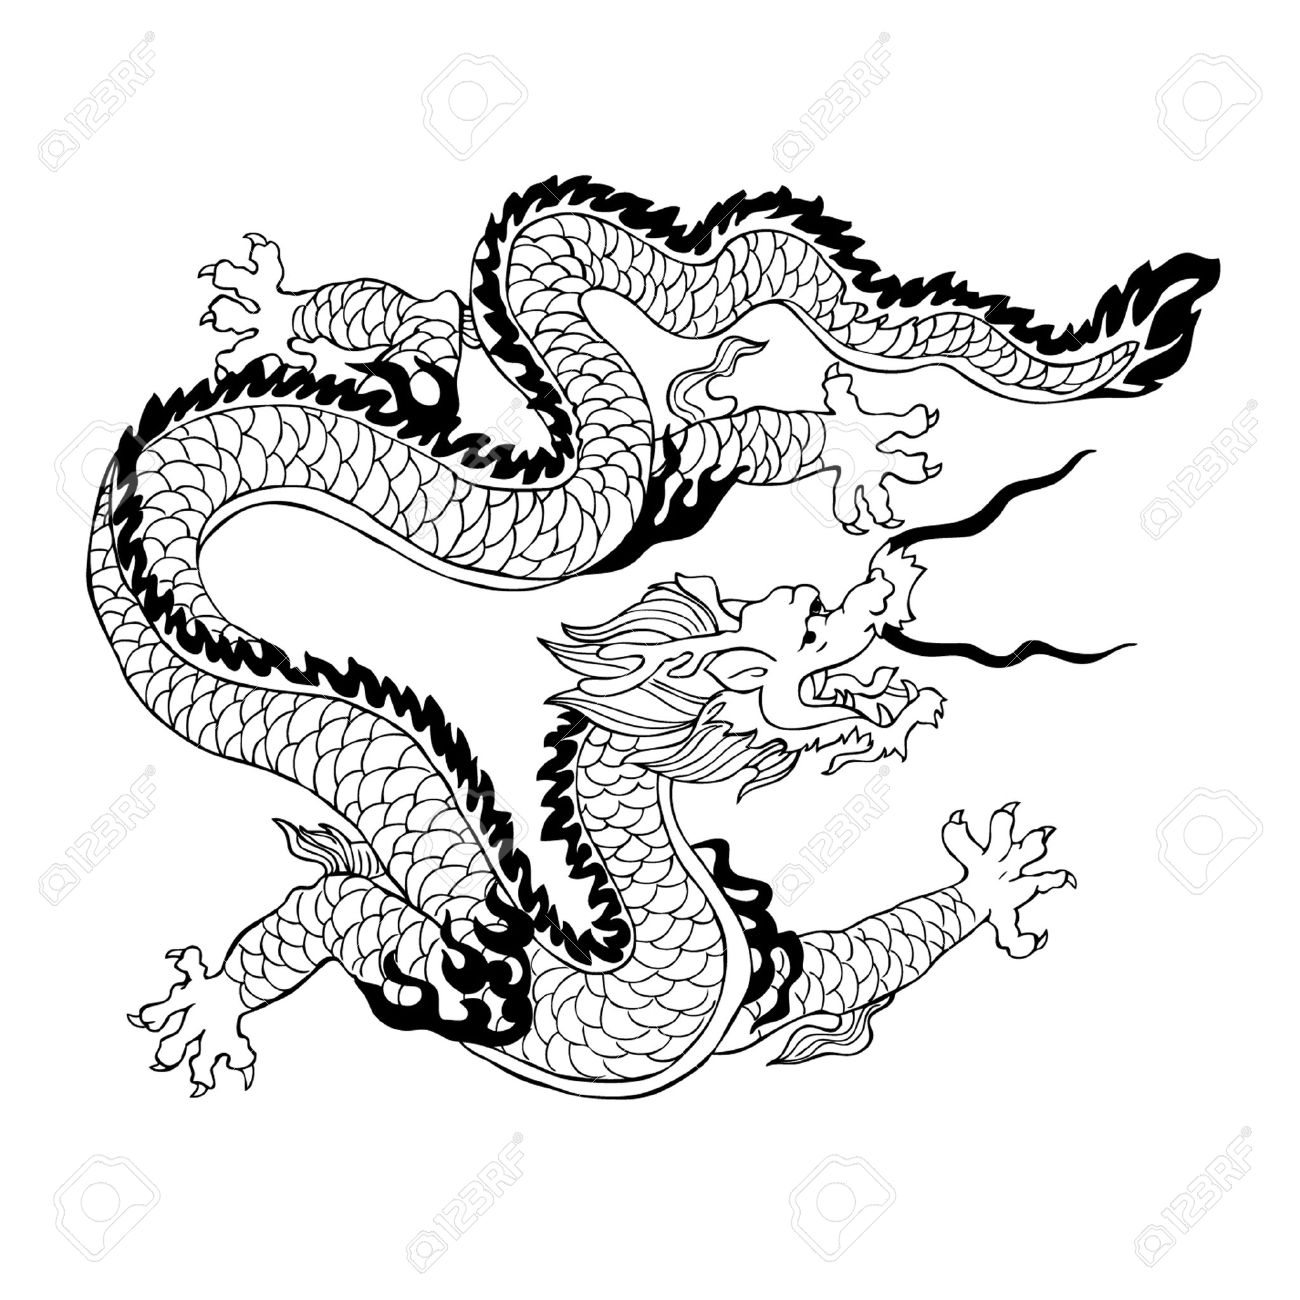 Chinese dragon clipart black and white 2 » Clipart Station.